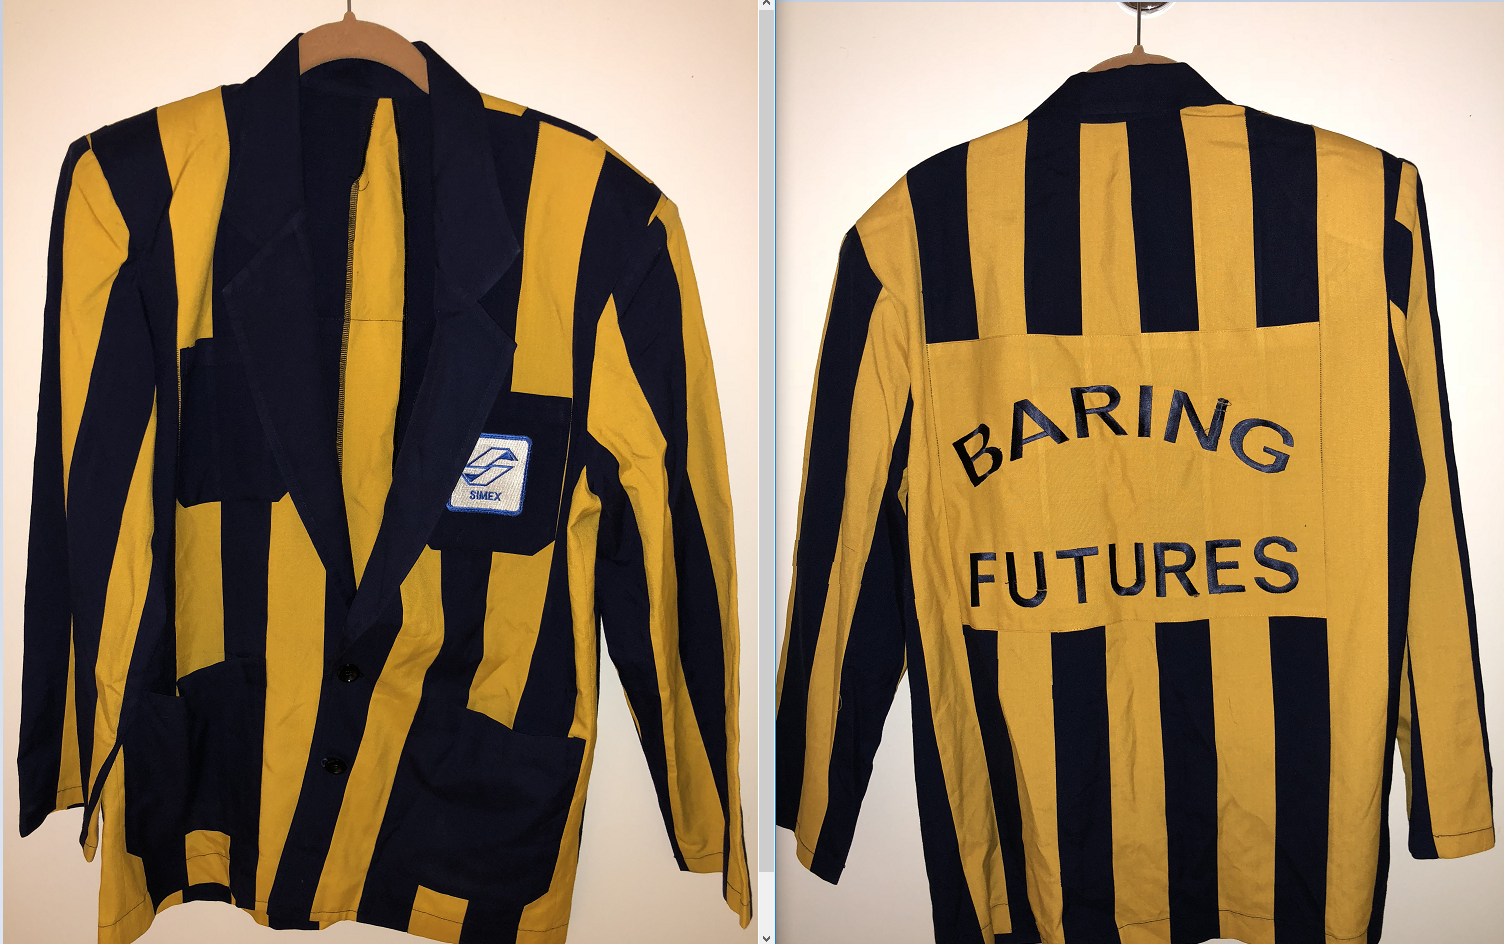 Barings Bank trading jacket Nick Leeson Singapore SIMEX